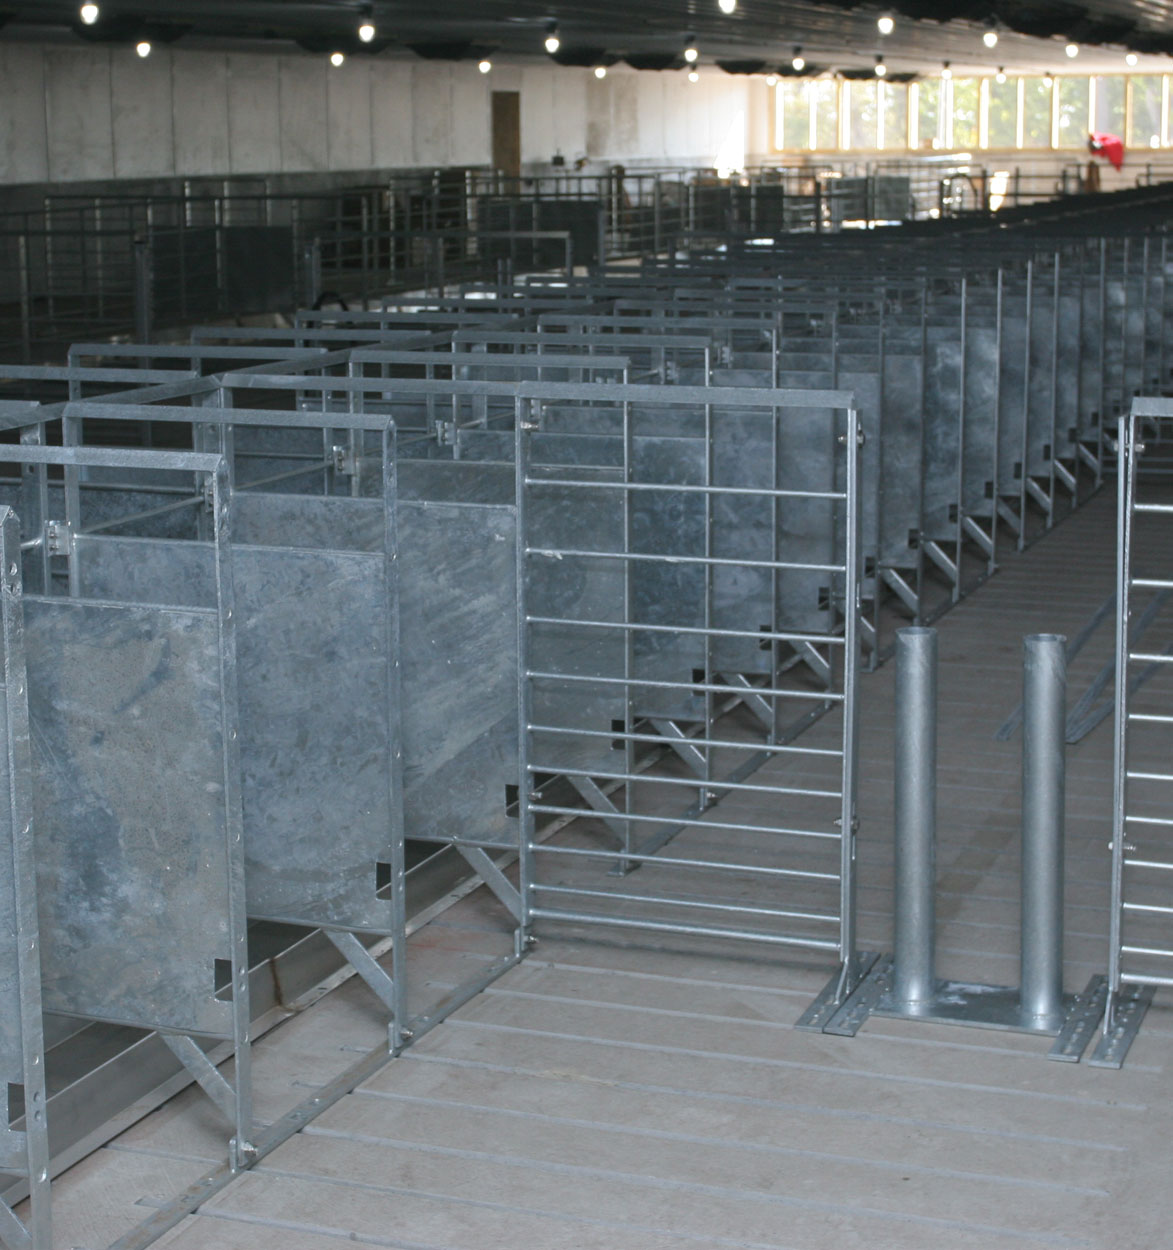 Hog Slat stanchions for sow group housing can be manufactured with several different divider options. (Shown: Galvanized solid metal divider panels with stainless steel sow feeding trough and walk-through post.)